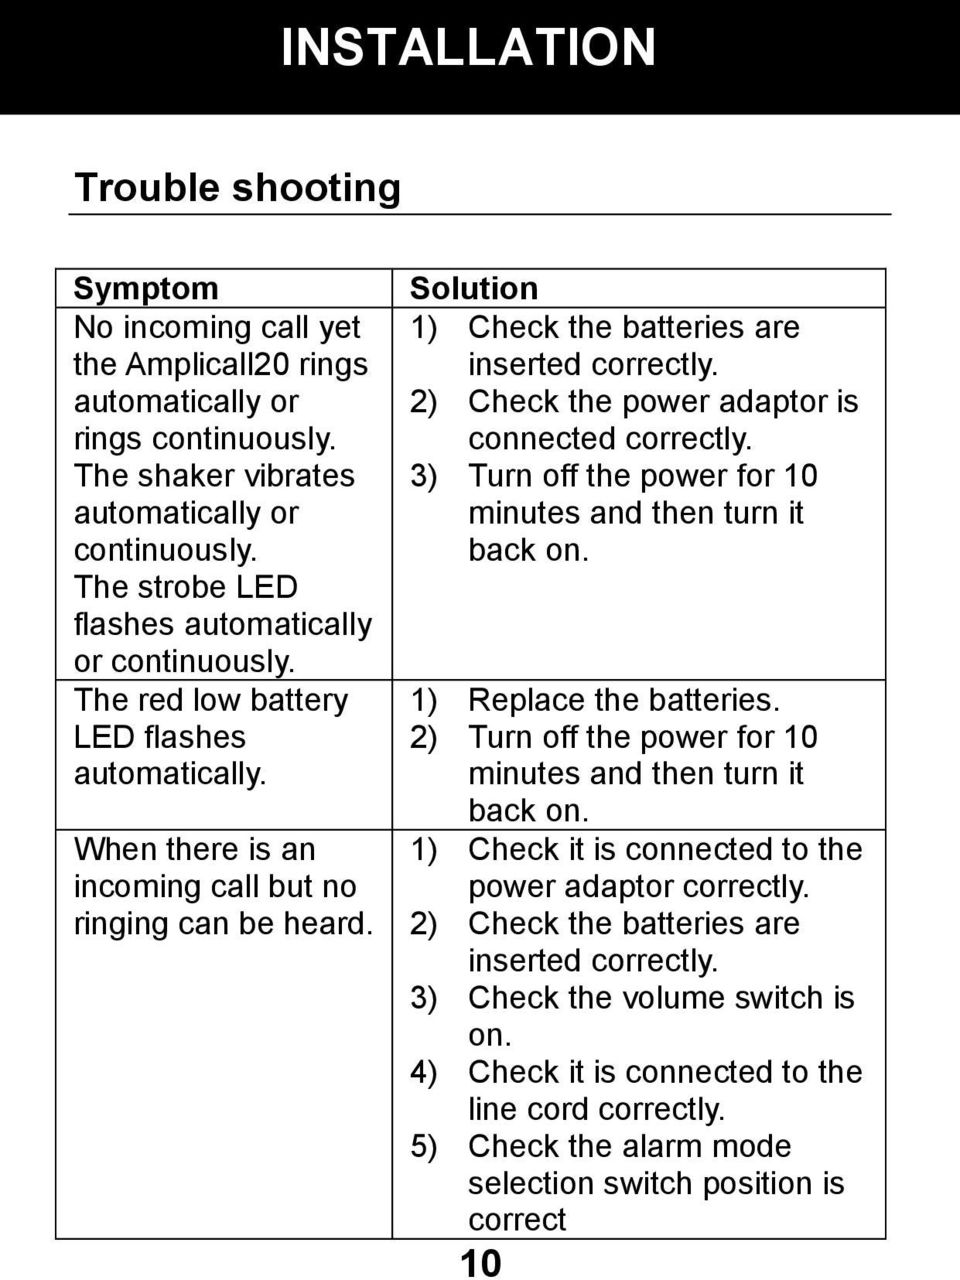 Solution 1) Check the batteries are inserted correctly. 2) Check the power adaptor is connected correctly. 3) Turn off the power for 10 minutes and then turn it back on. 1) Replace the batteries.